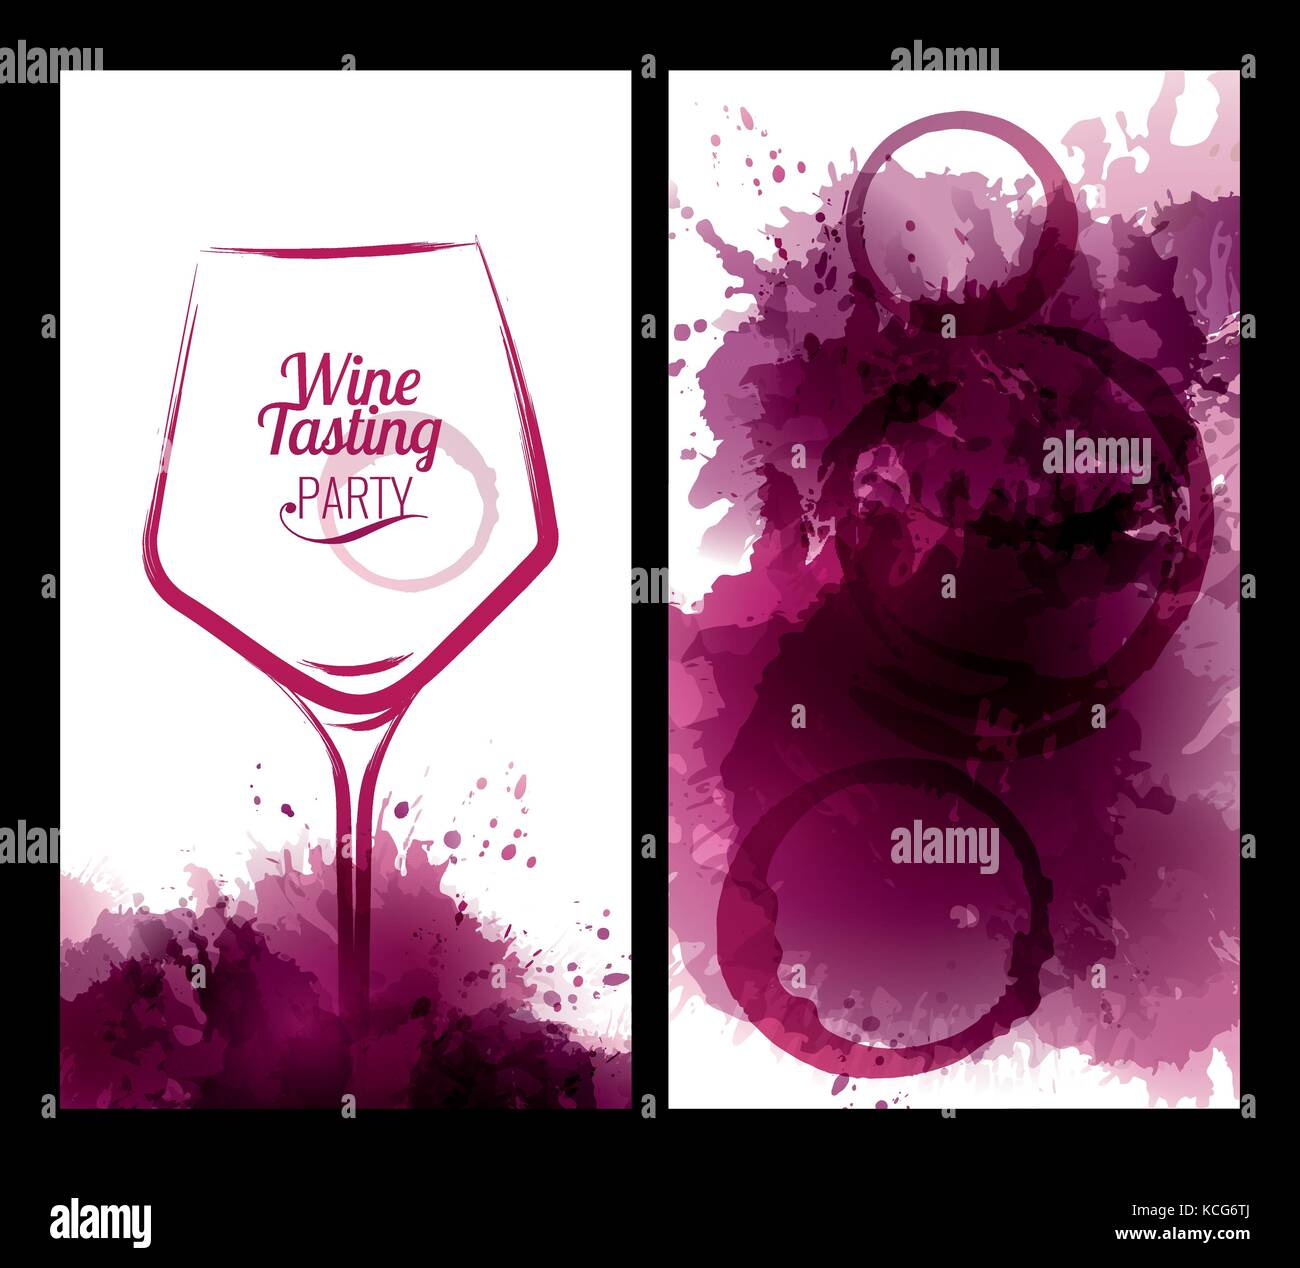 Illustration of wine glass with stains. Invitation template for wine ...